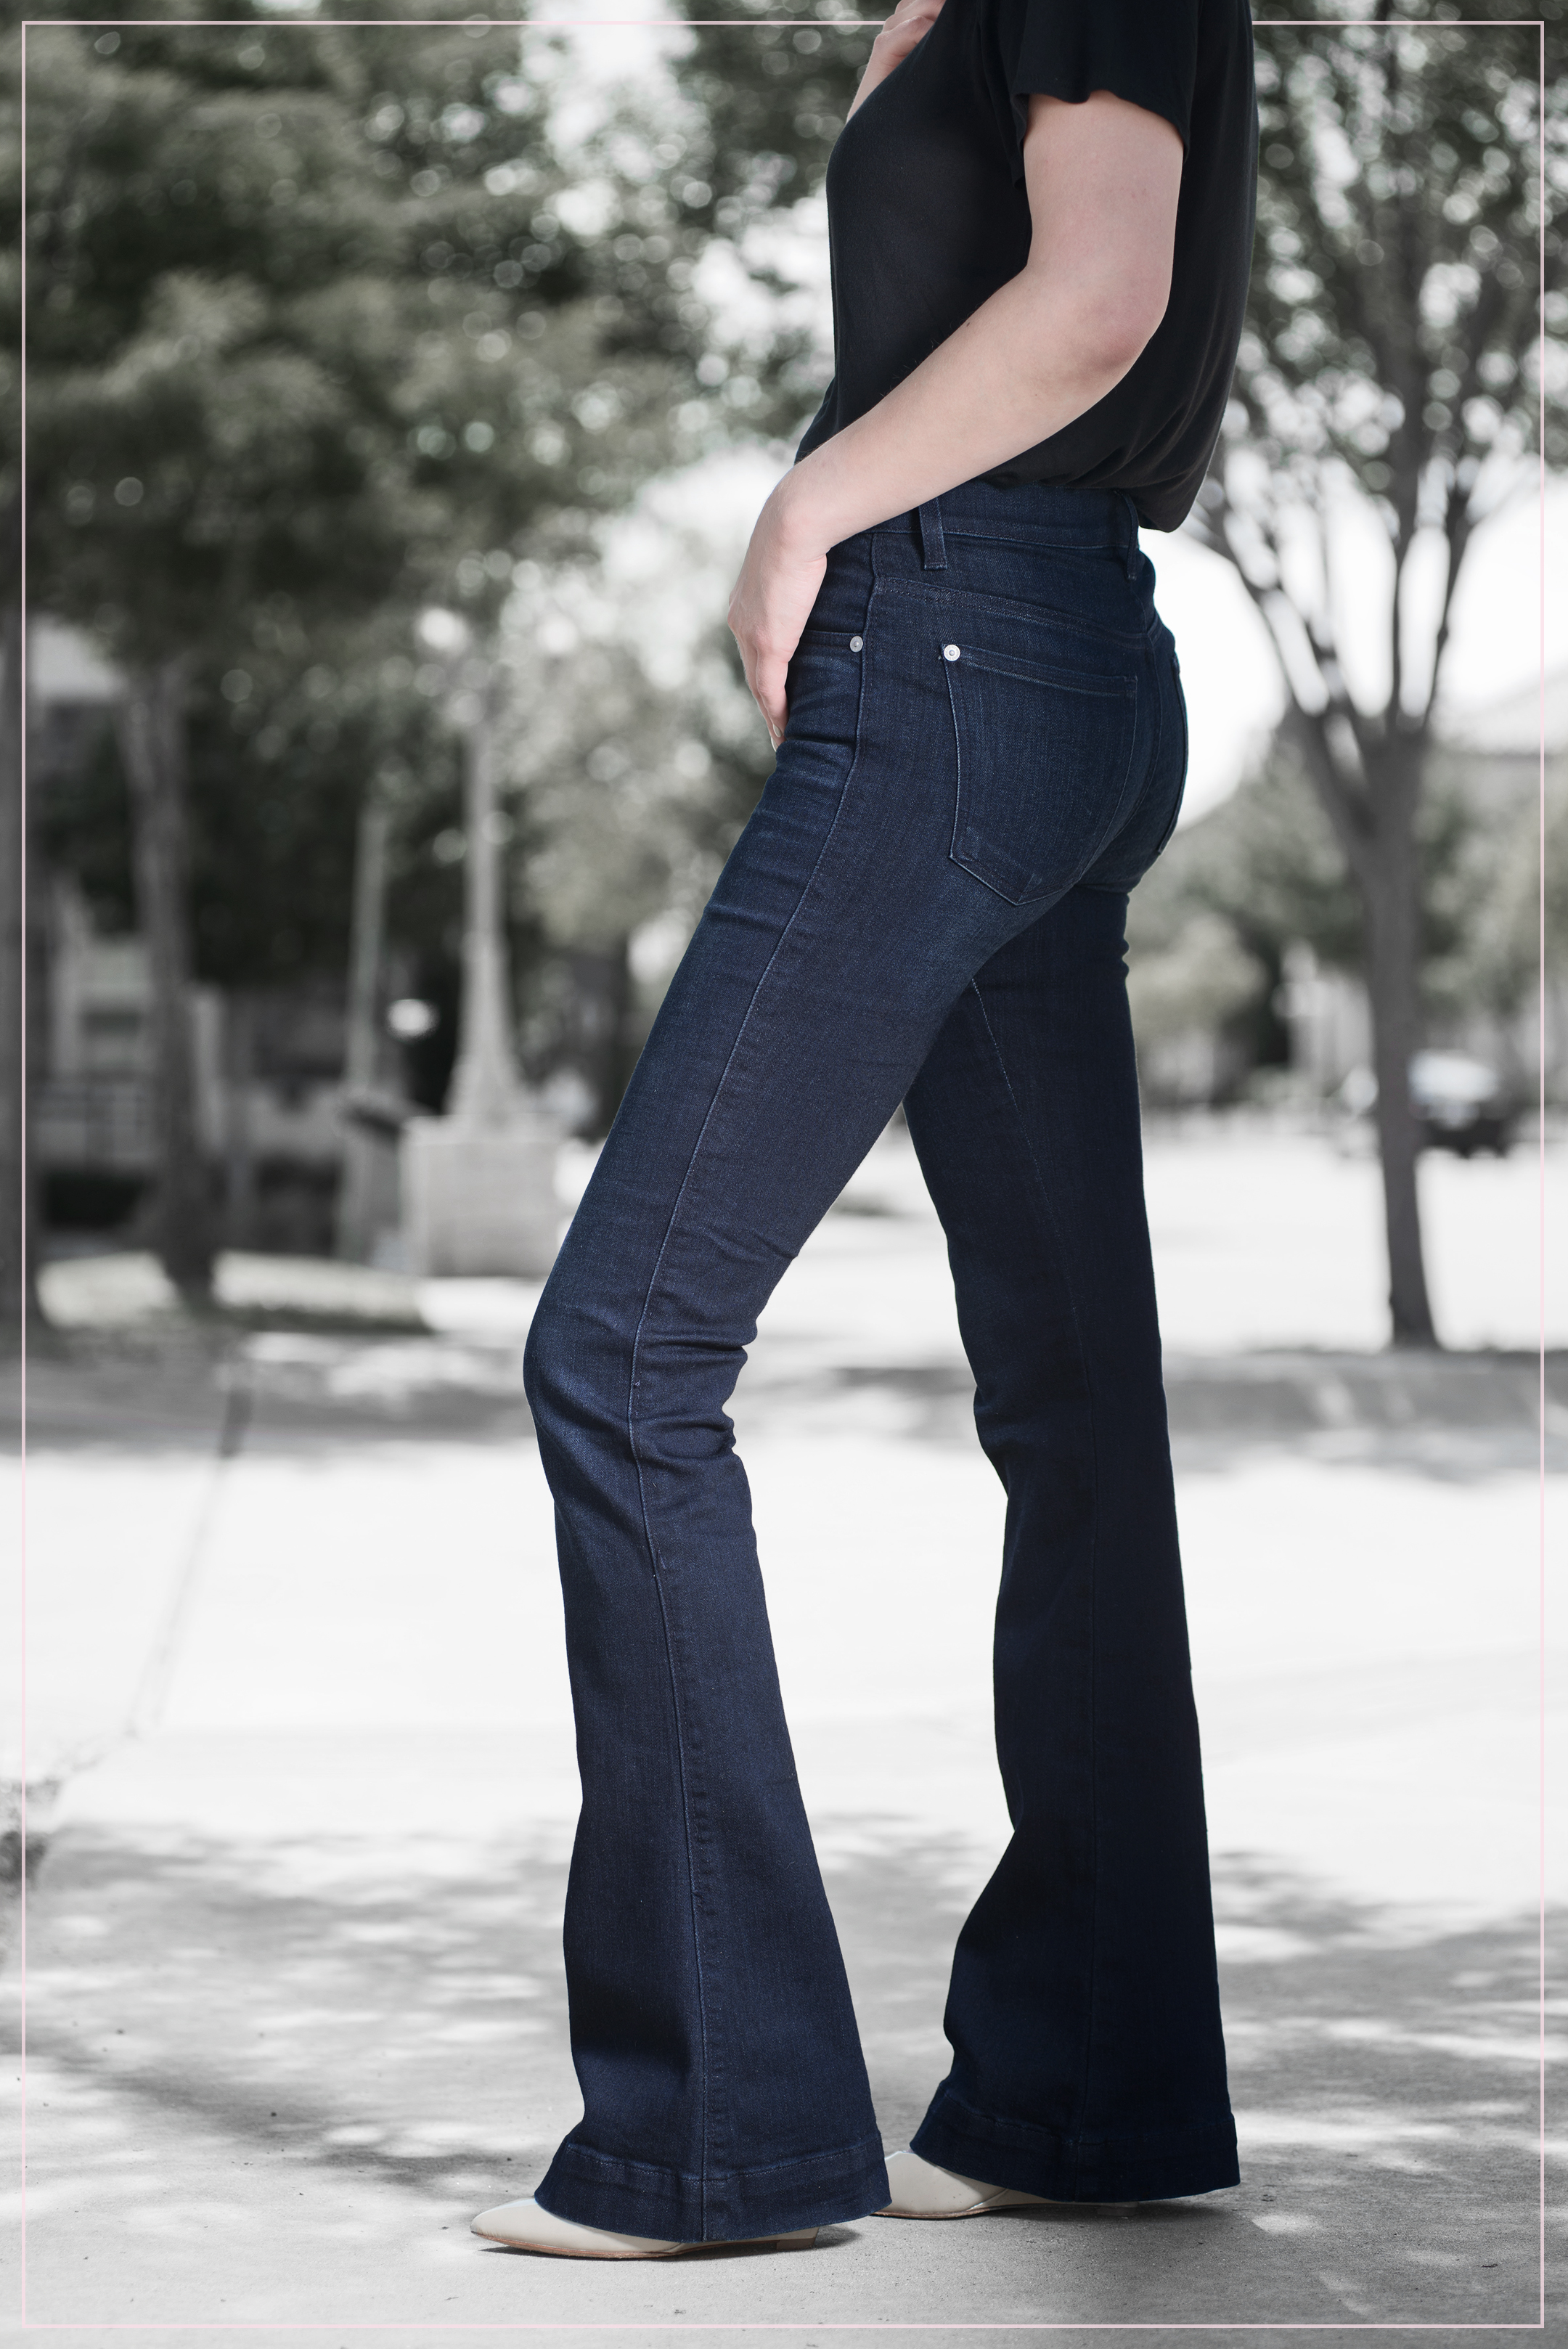 7 FOR ALL MANKIND flared jeans silent imagery prfect fit denim